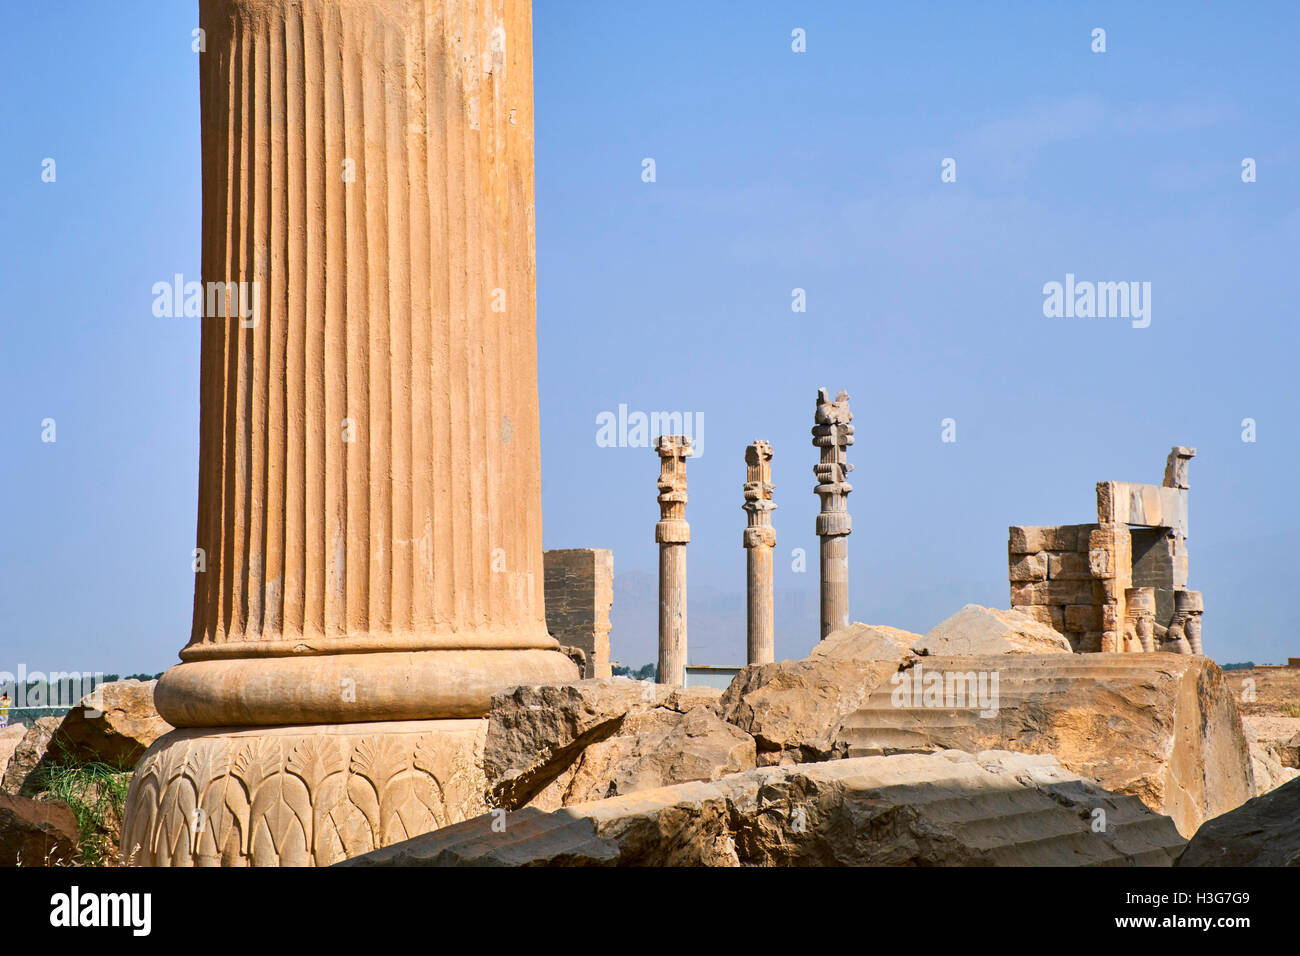 Iran, Fars Province, Persepolis, World Heritage of the UNESCO, pillars of the Apadane palace - Stock Image